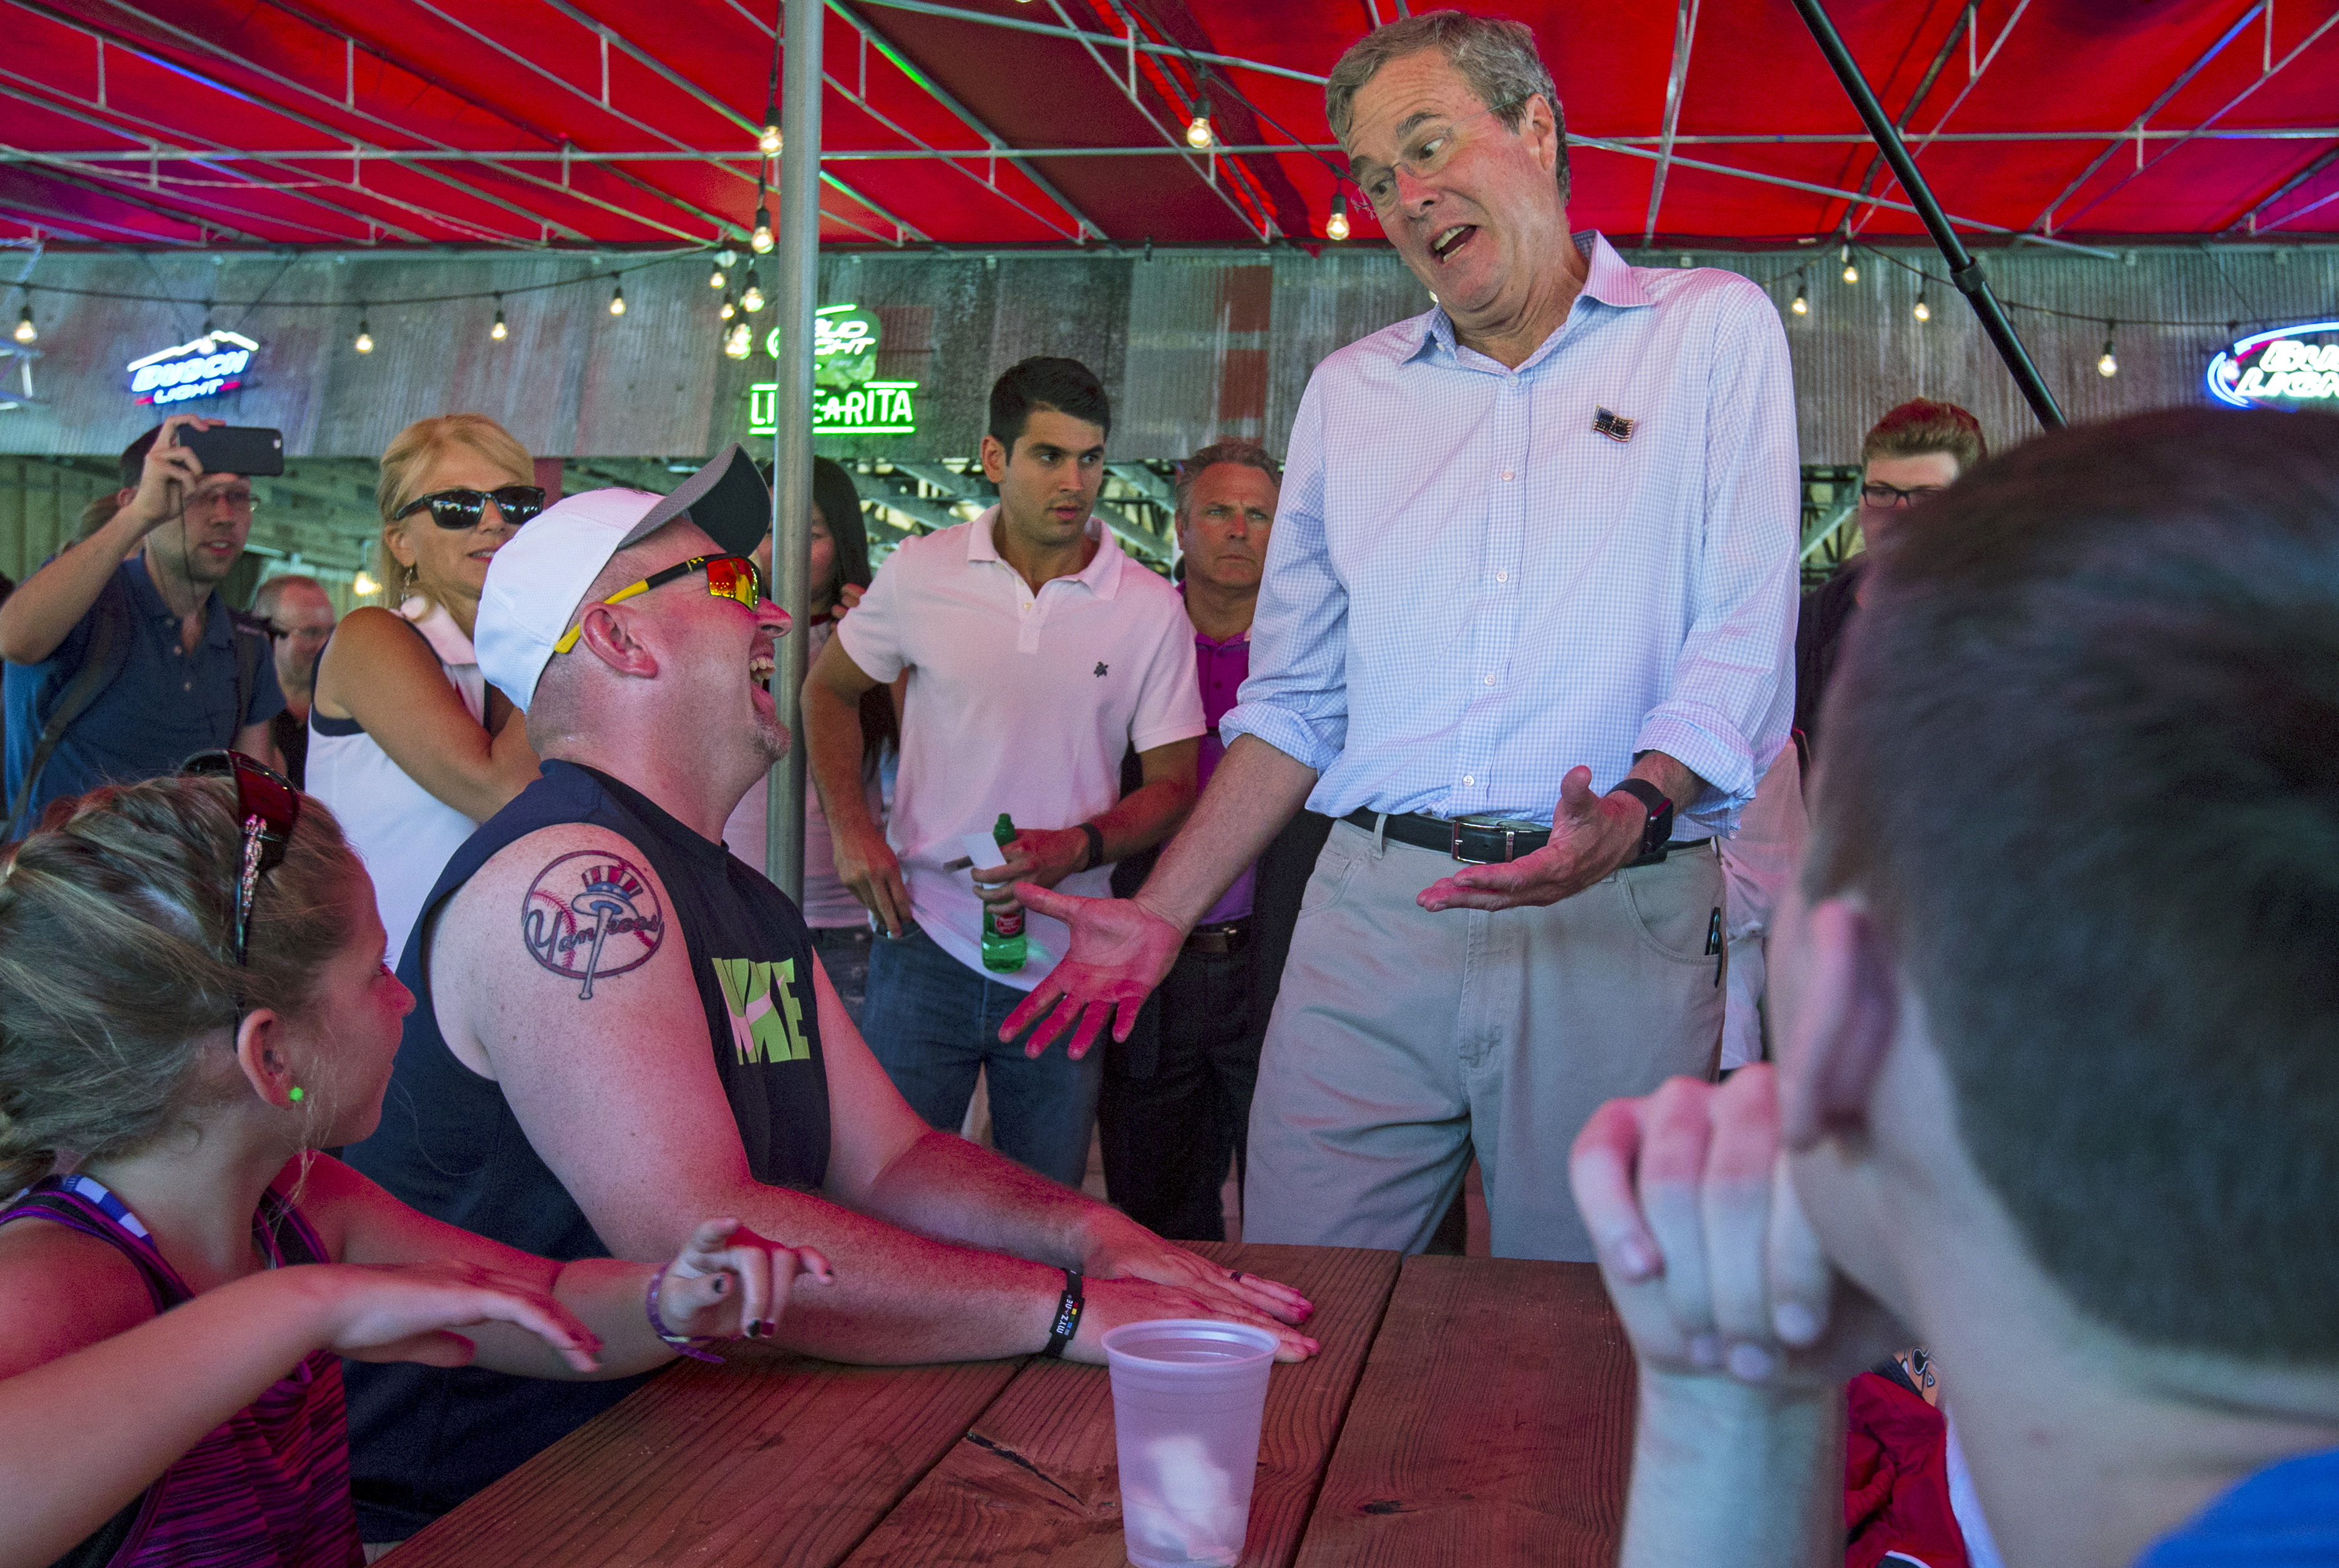 U.S. Republican presidential candidate Jeb Bush (2nd R) shares a laugh with attendees at the Iowa State Fair in Des Moines, Iowa, United States, August 14, 2015. REUTERS/Jim Young  TPX IMAGES OF THE DAY      - RTX1OBBS